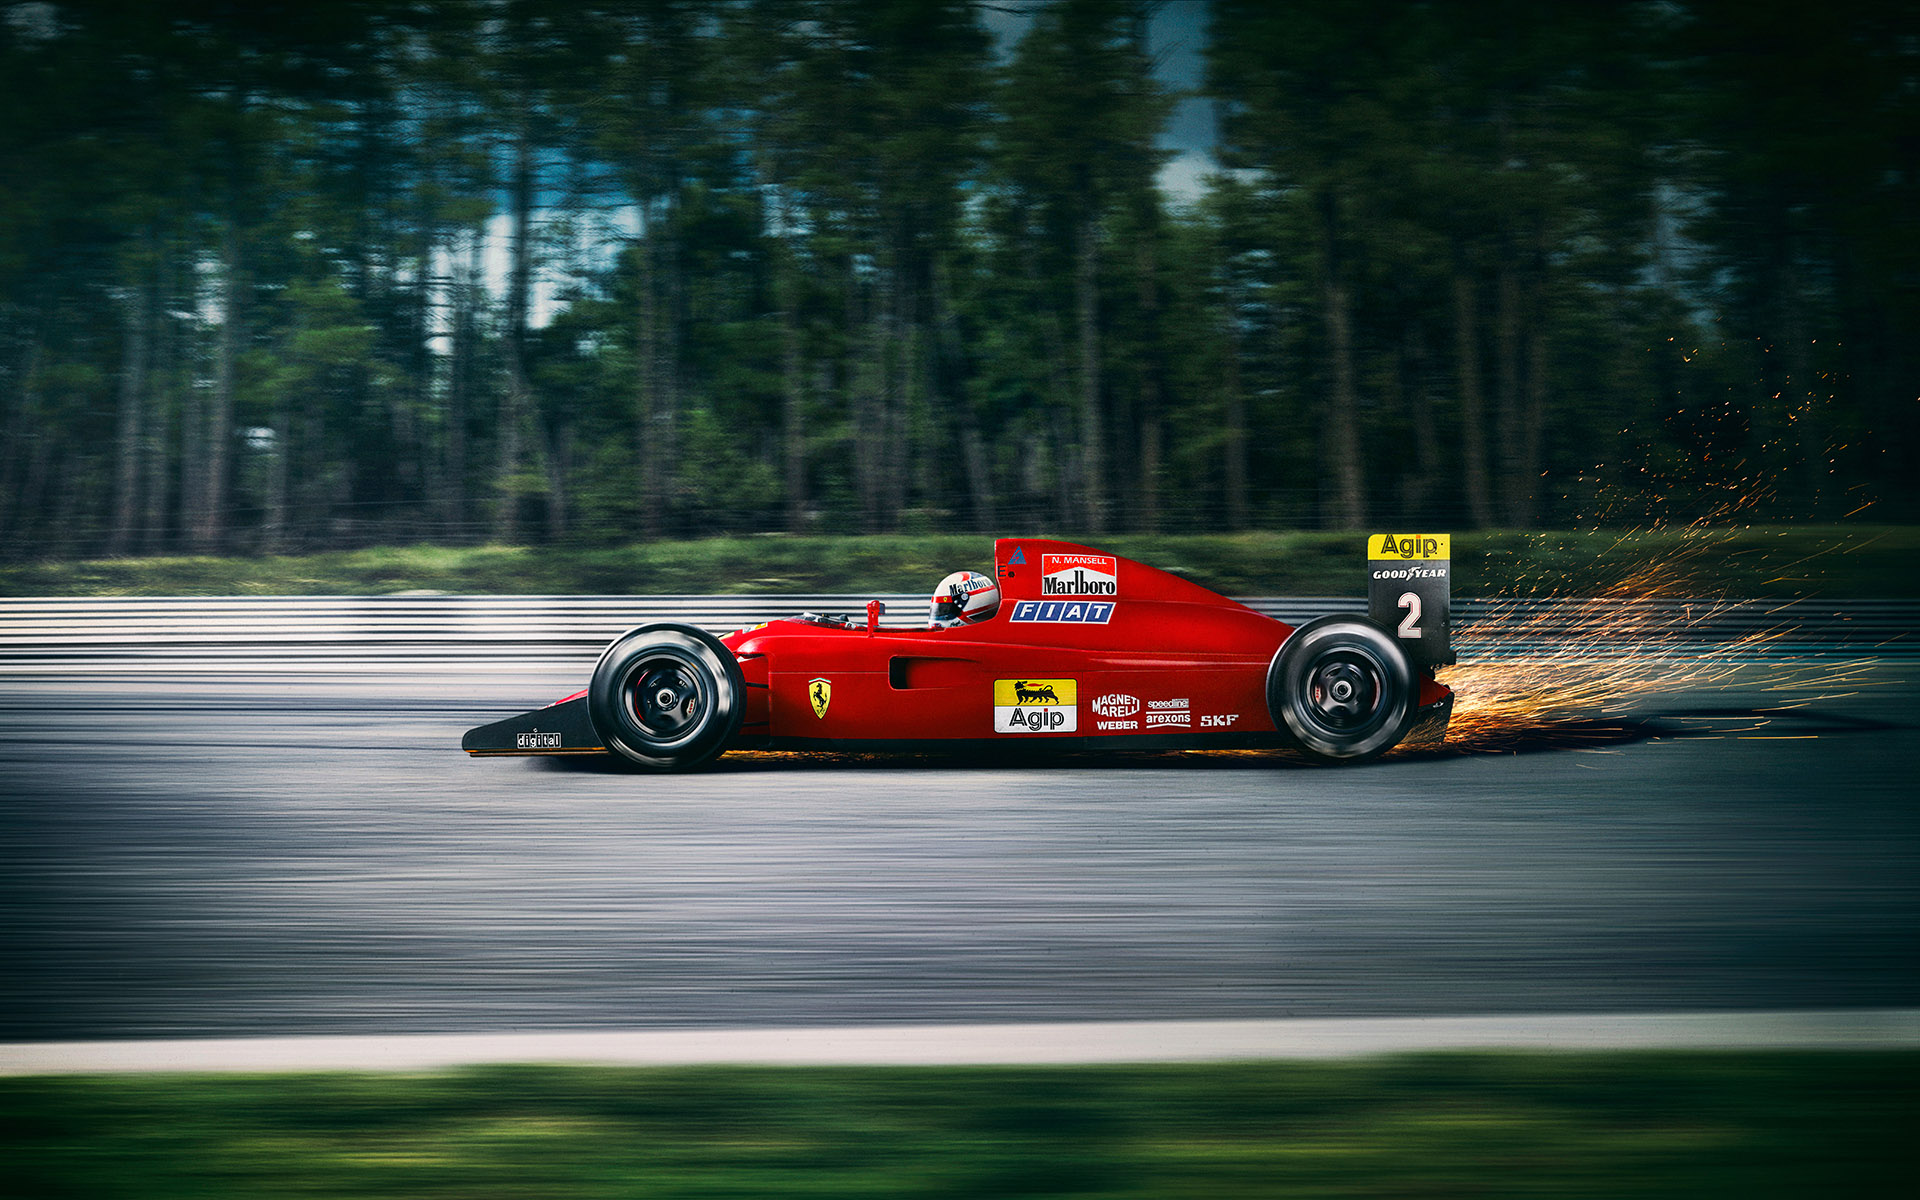 Nigel Mansell Ferrari F641 by Automotive Photographer